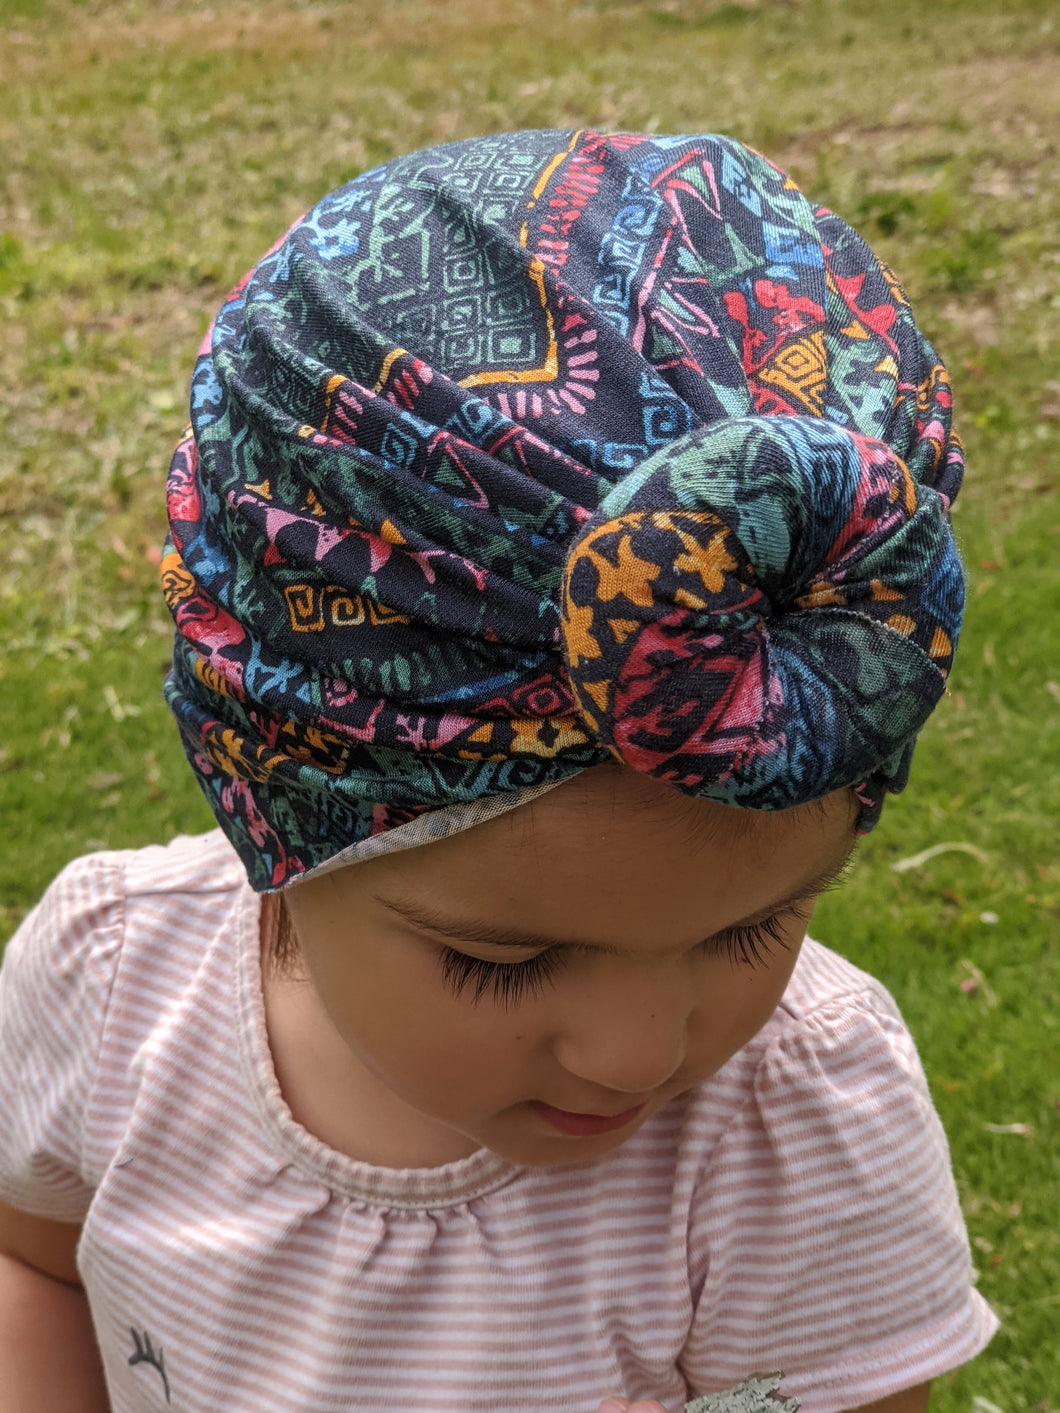 Rainbow Tribal Doughnut Turban Headwrap|Baby Turban|Adult Turban|Chemo Headwrap|Top Knot Baby Hat|Kids Turbans|Toddler Turban|Bun Turban